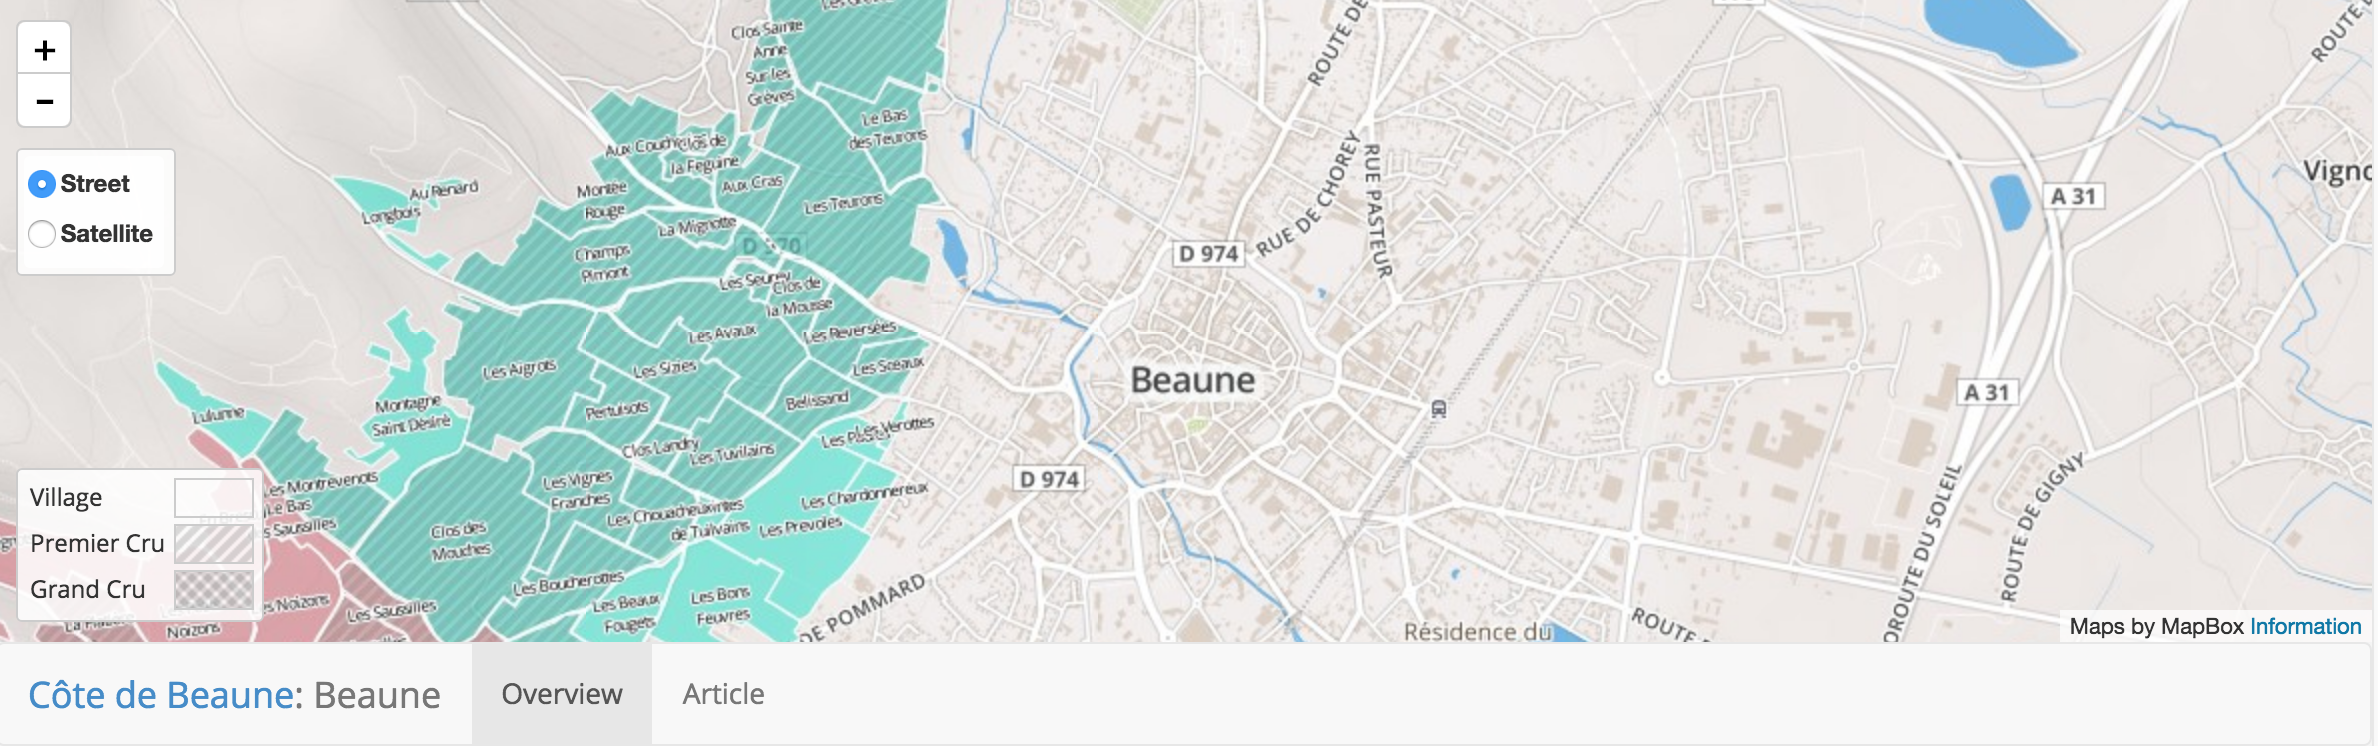 Screen capture courtesy of https://burgmap.com/regions/beaune/.